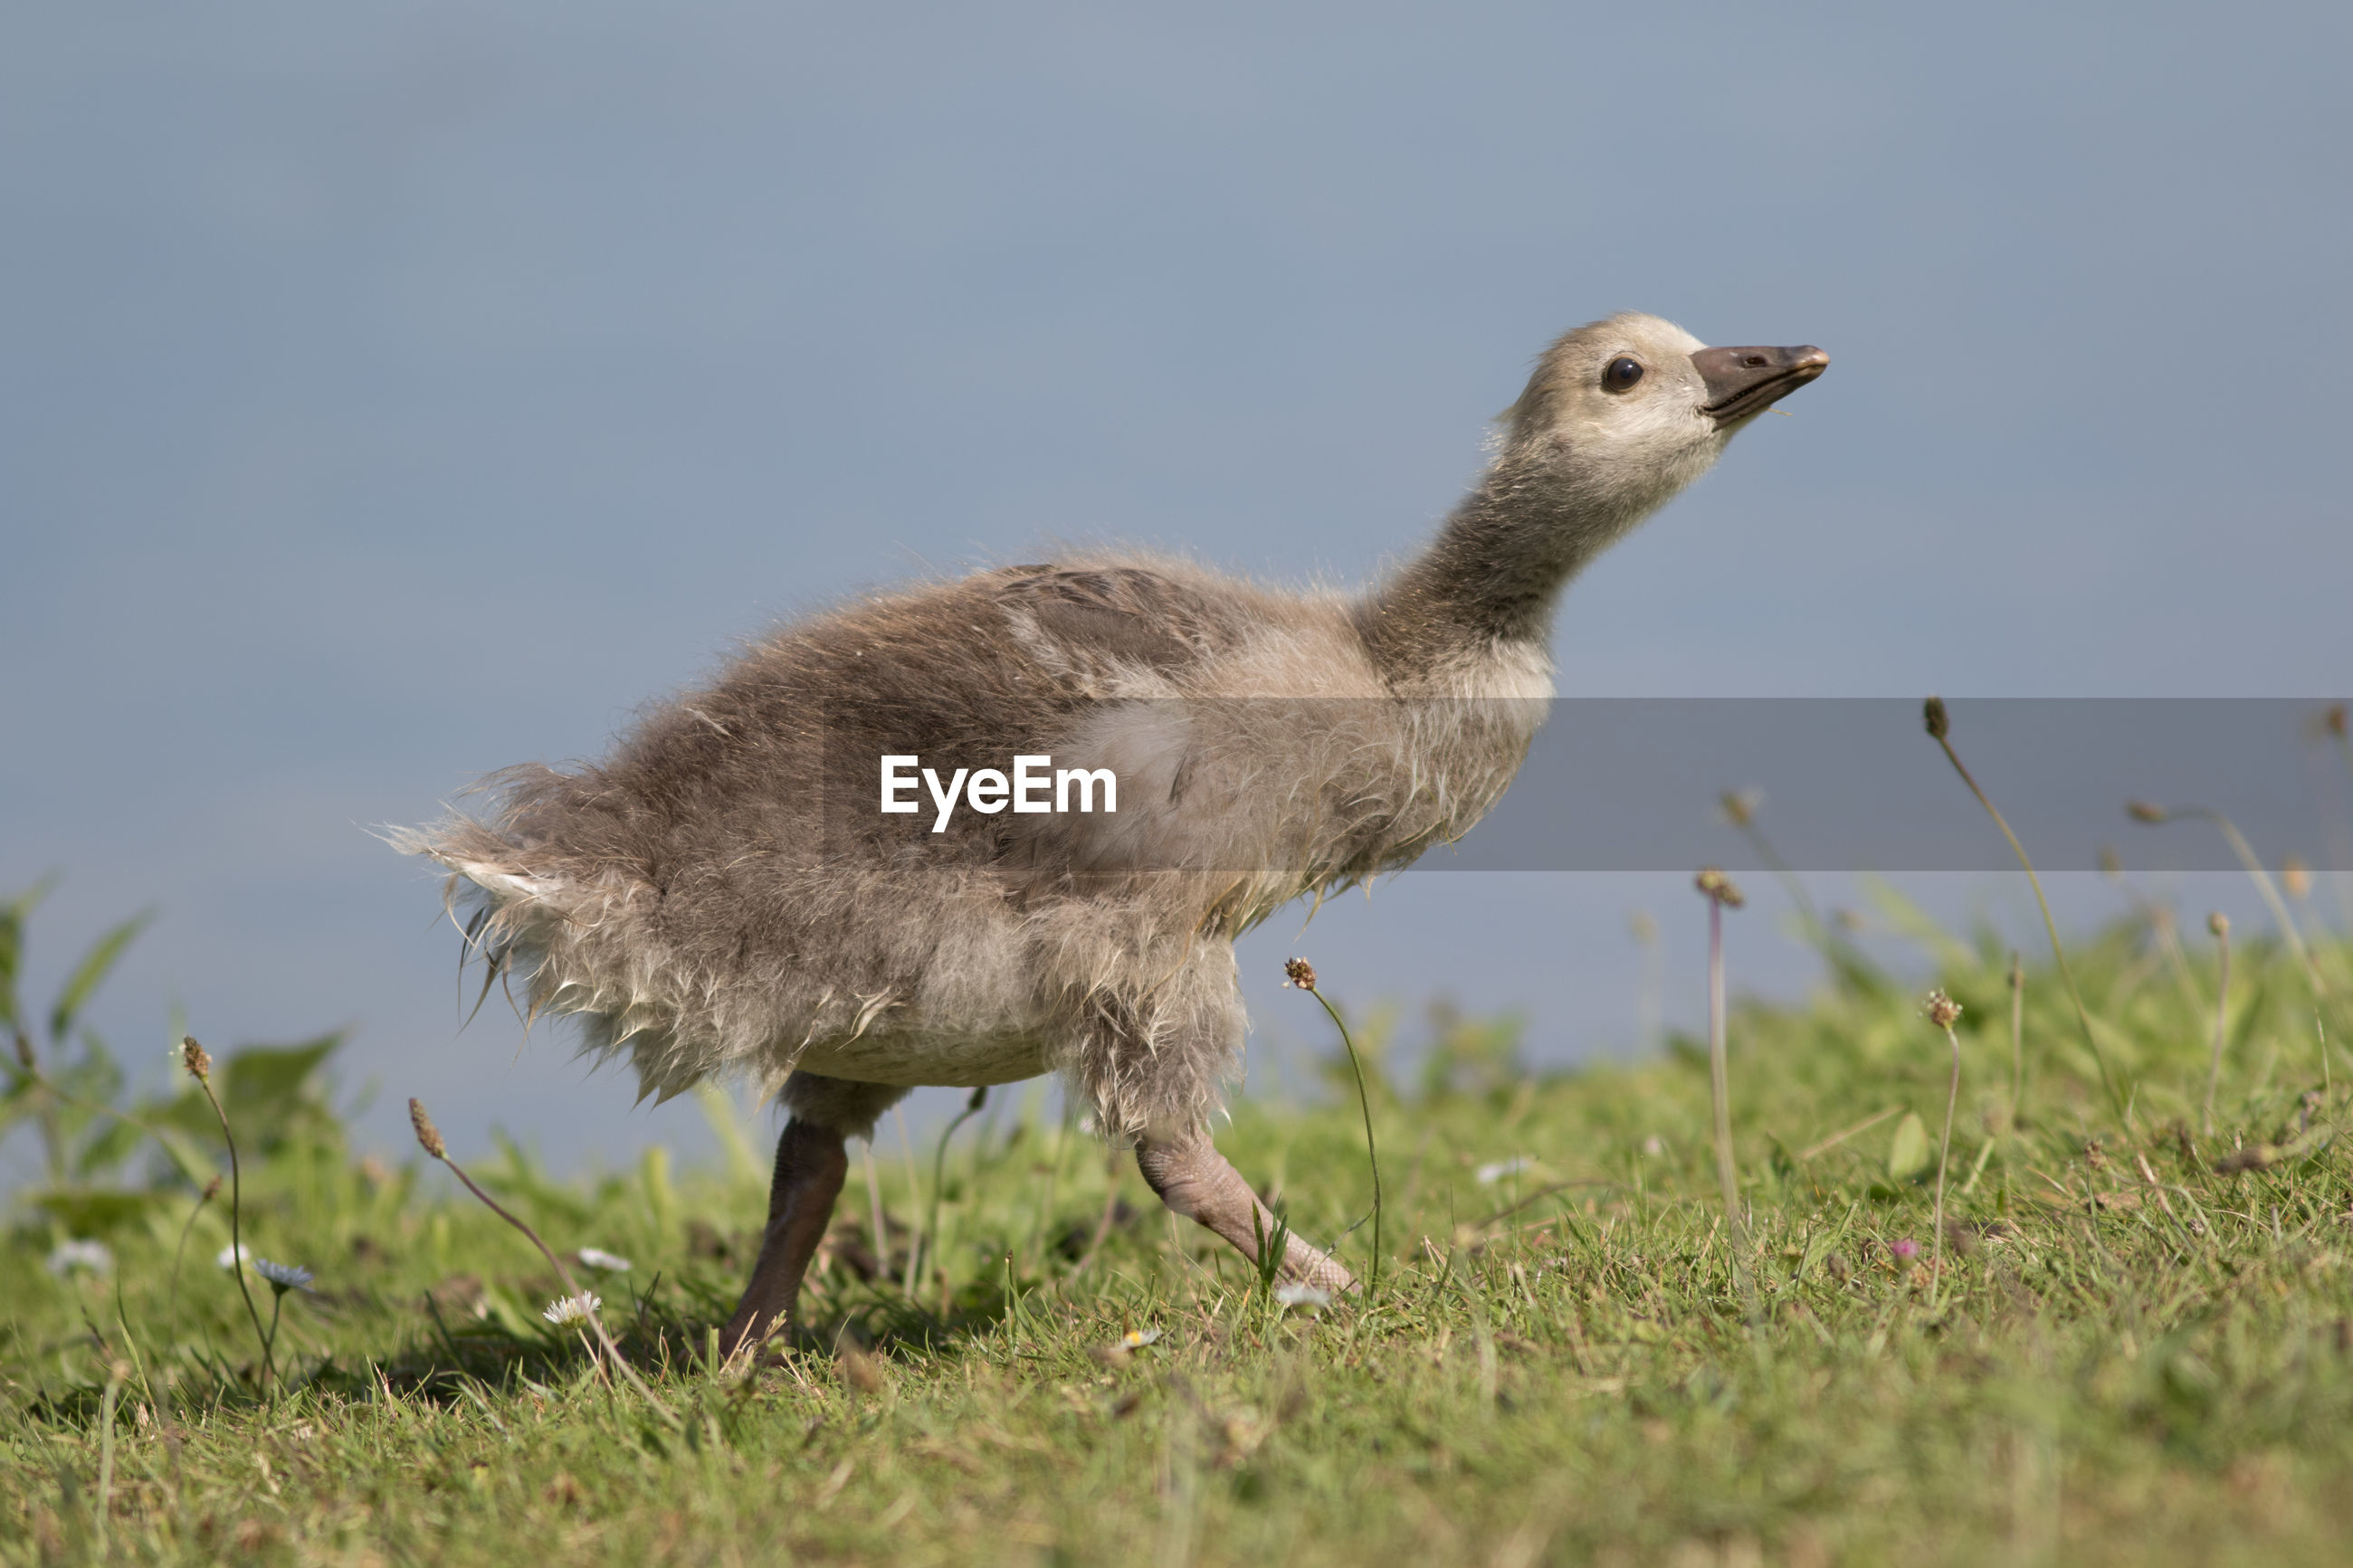 SIDE VIEW OF BIRD ON GRASS